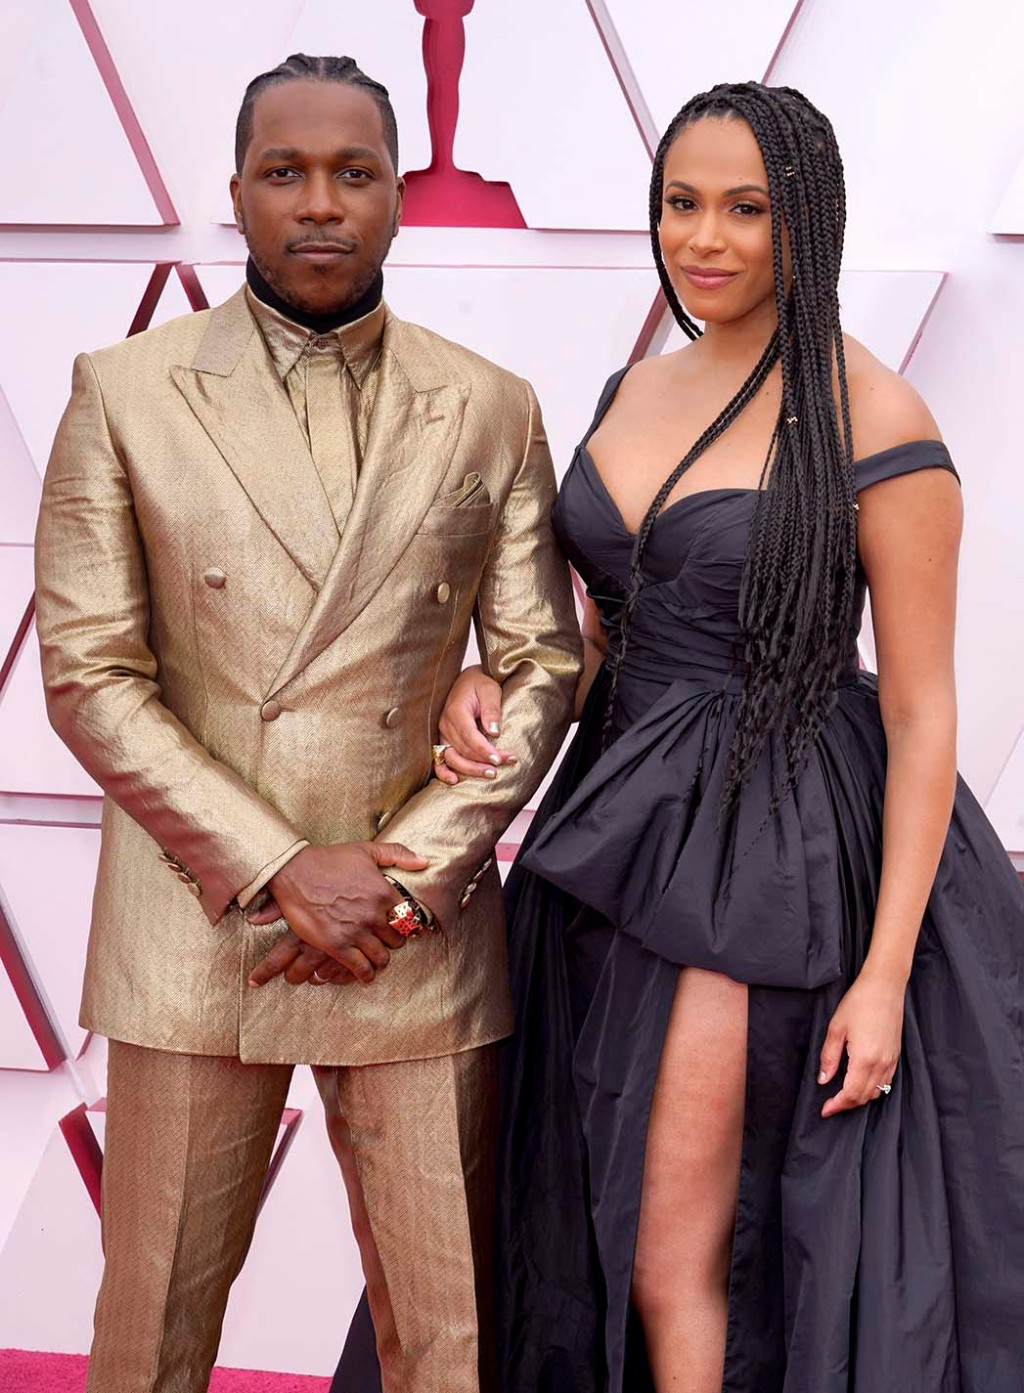 Leslie Odom Jr., left, and Nicolette Robinson